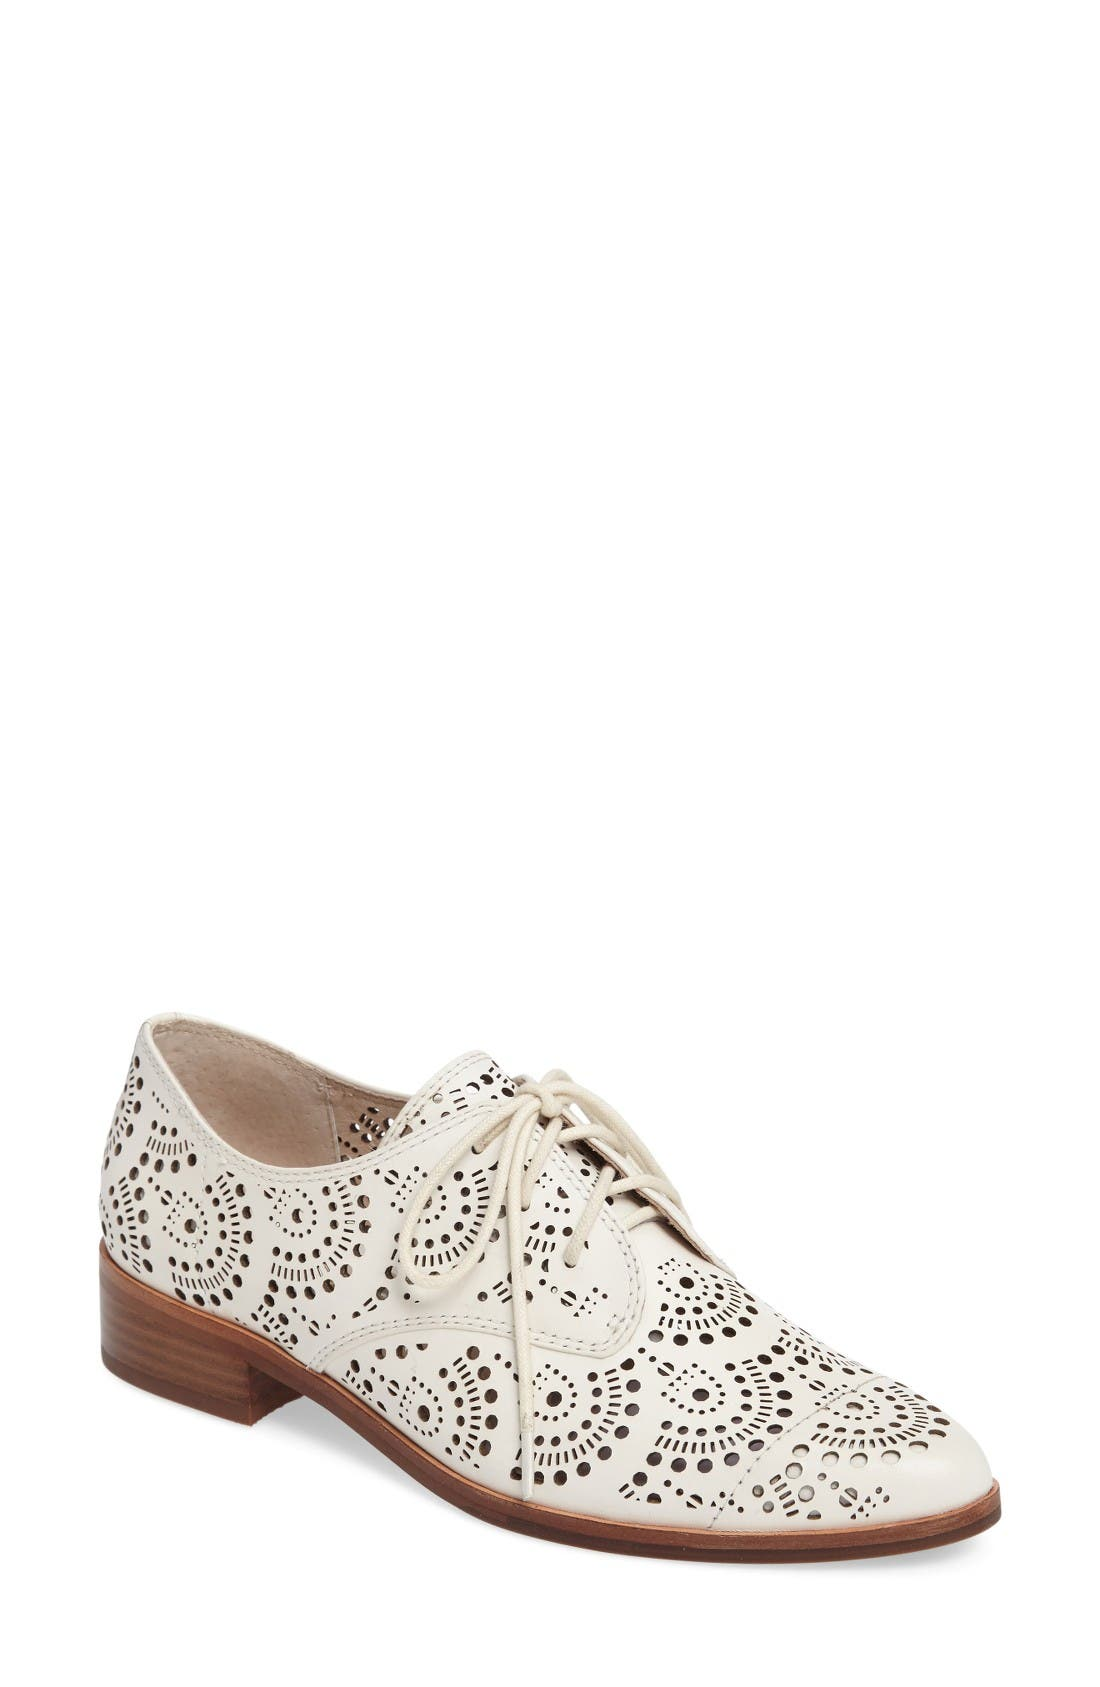 Main Image - Louise et Cie Annacis Perforated Oxford (Women)